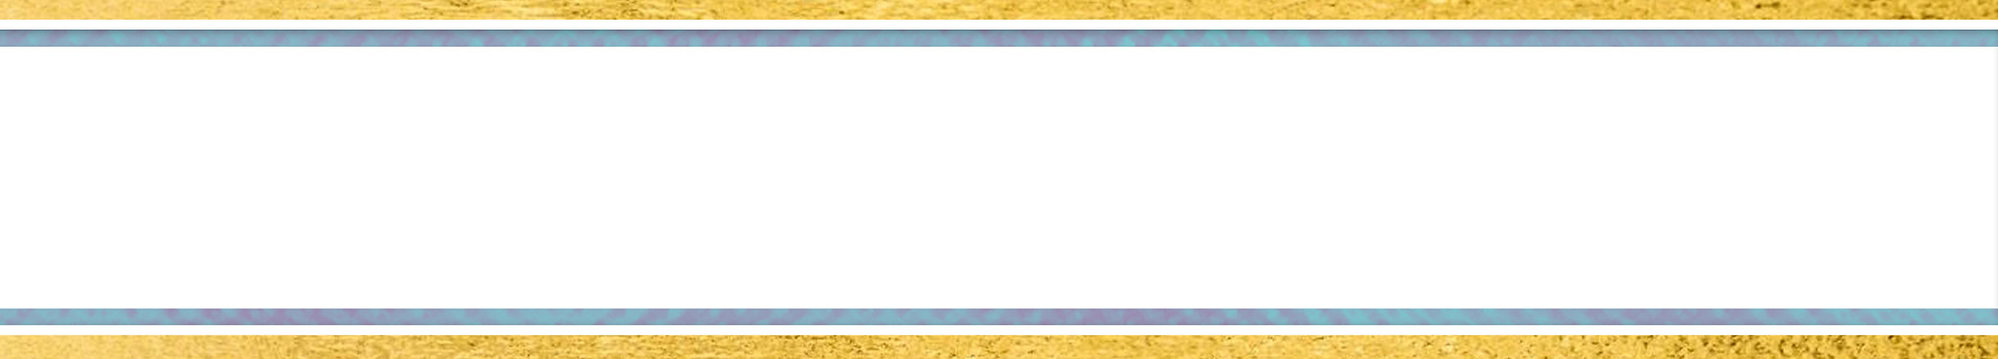 Slim banner (for ambassadors).jpg